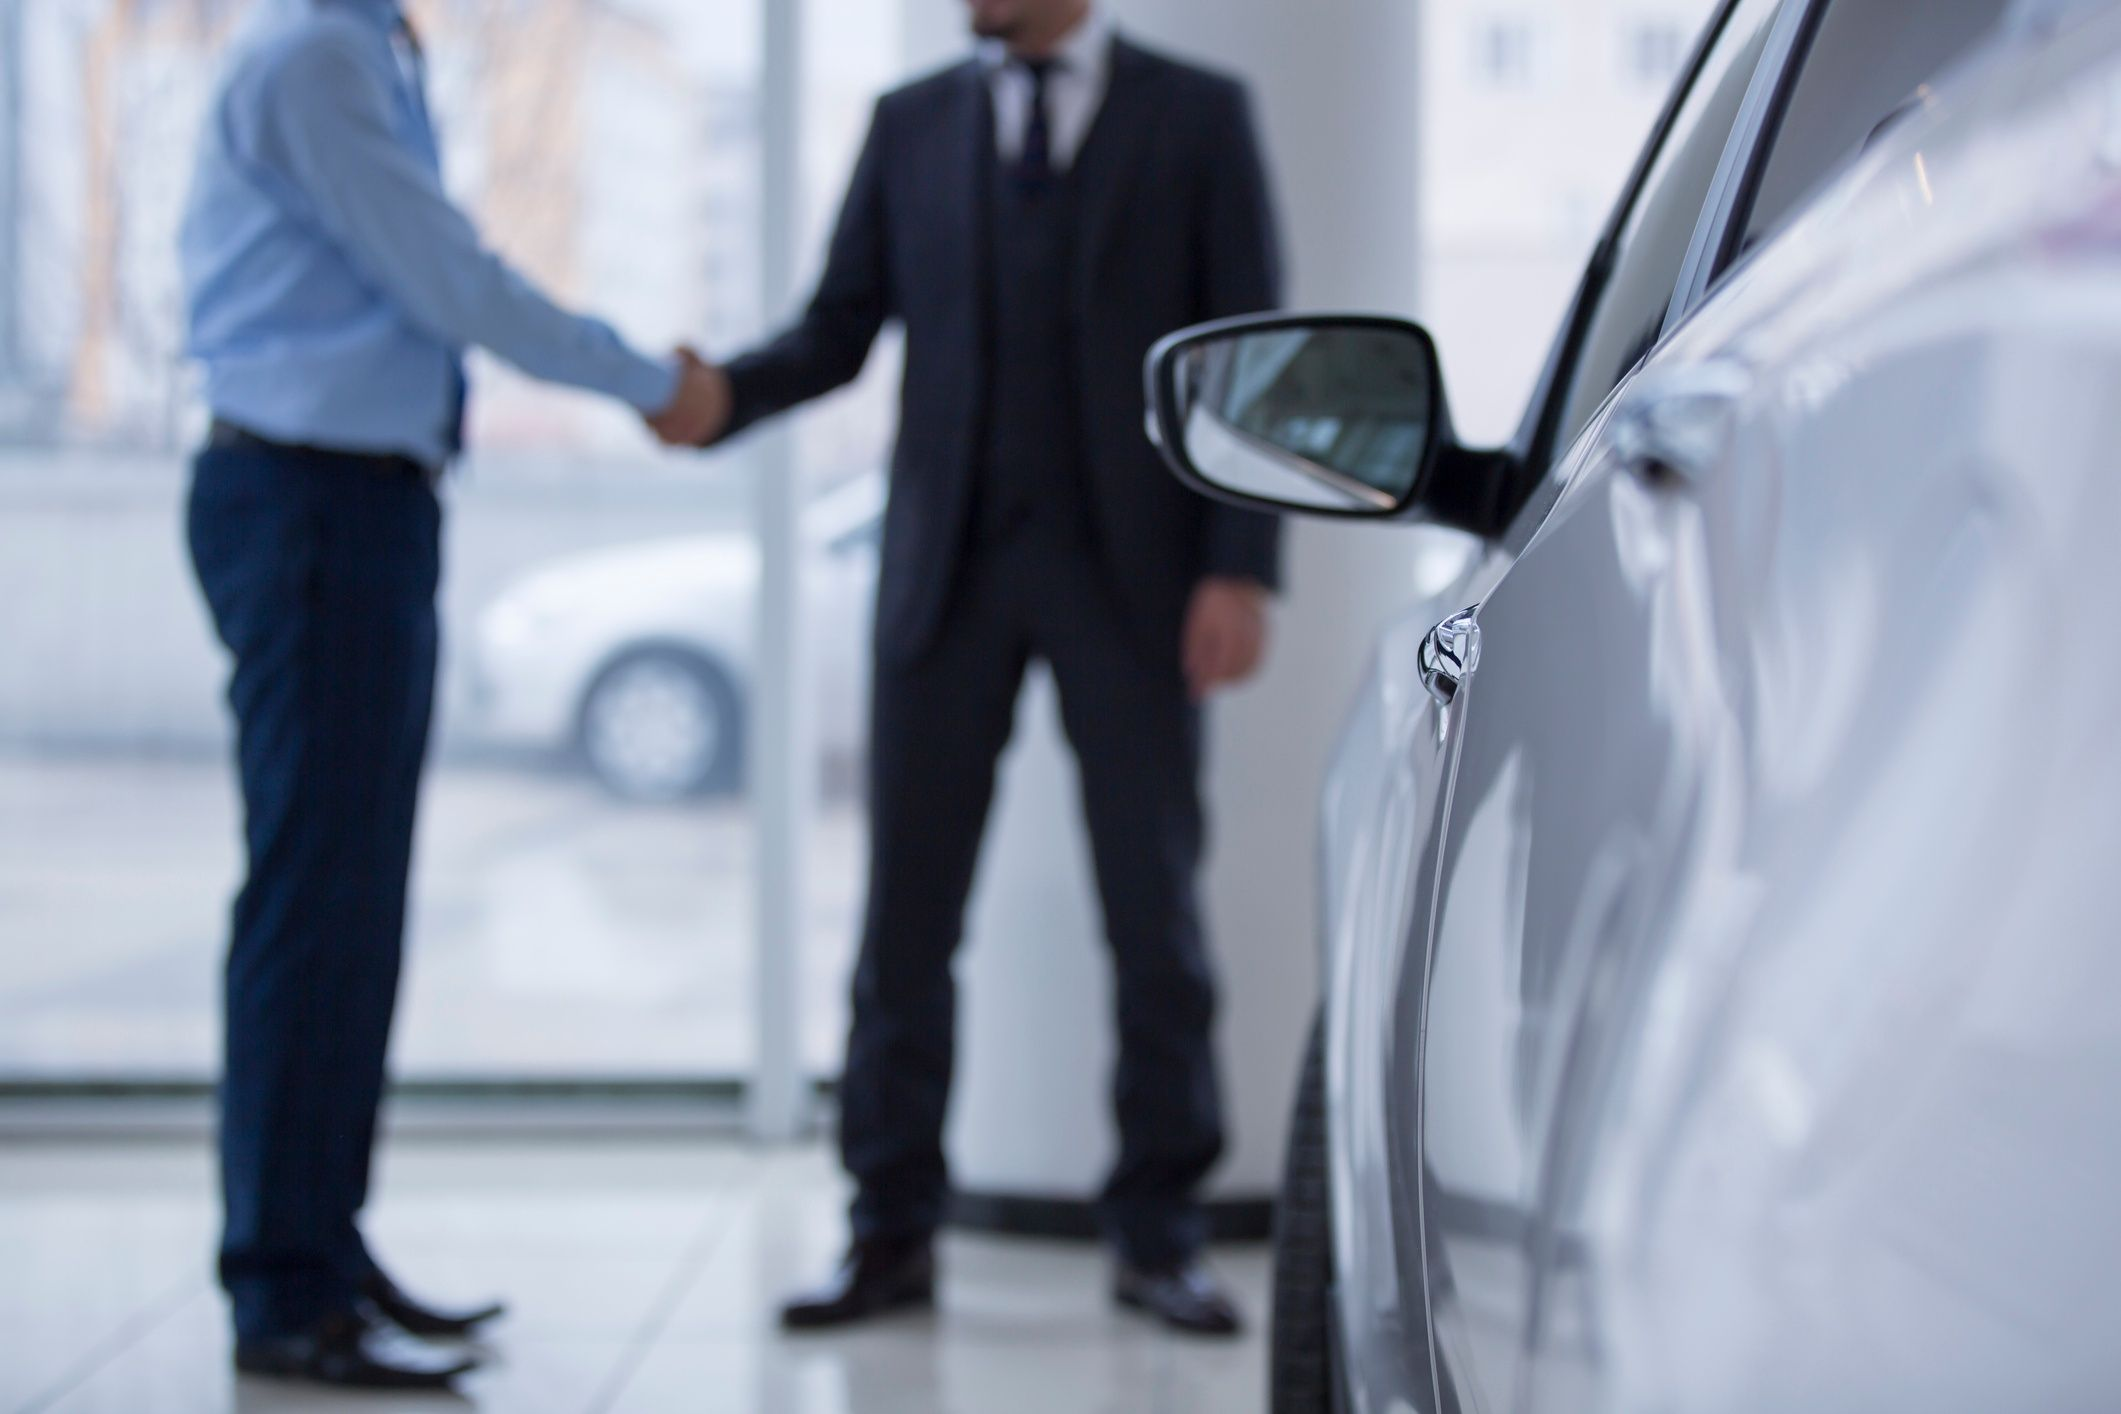 Come To Richmond Honda For Expert Repair And Maintenance Services For Your Honda Call 604 207 1800 To Make An A Car Lease Small Luxury Cars Car Rental Company